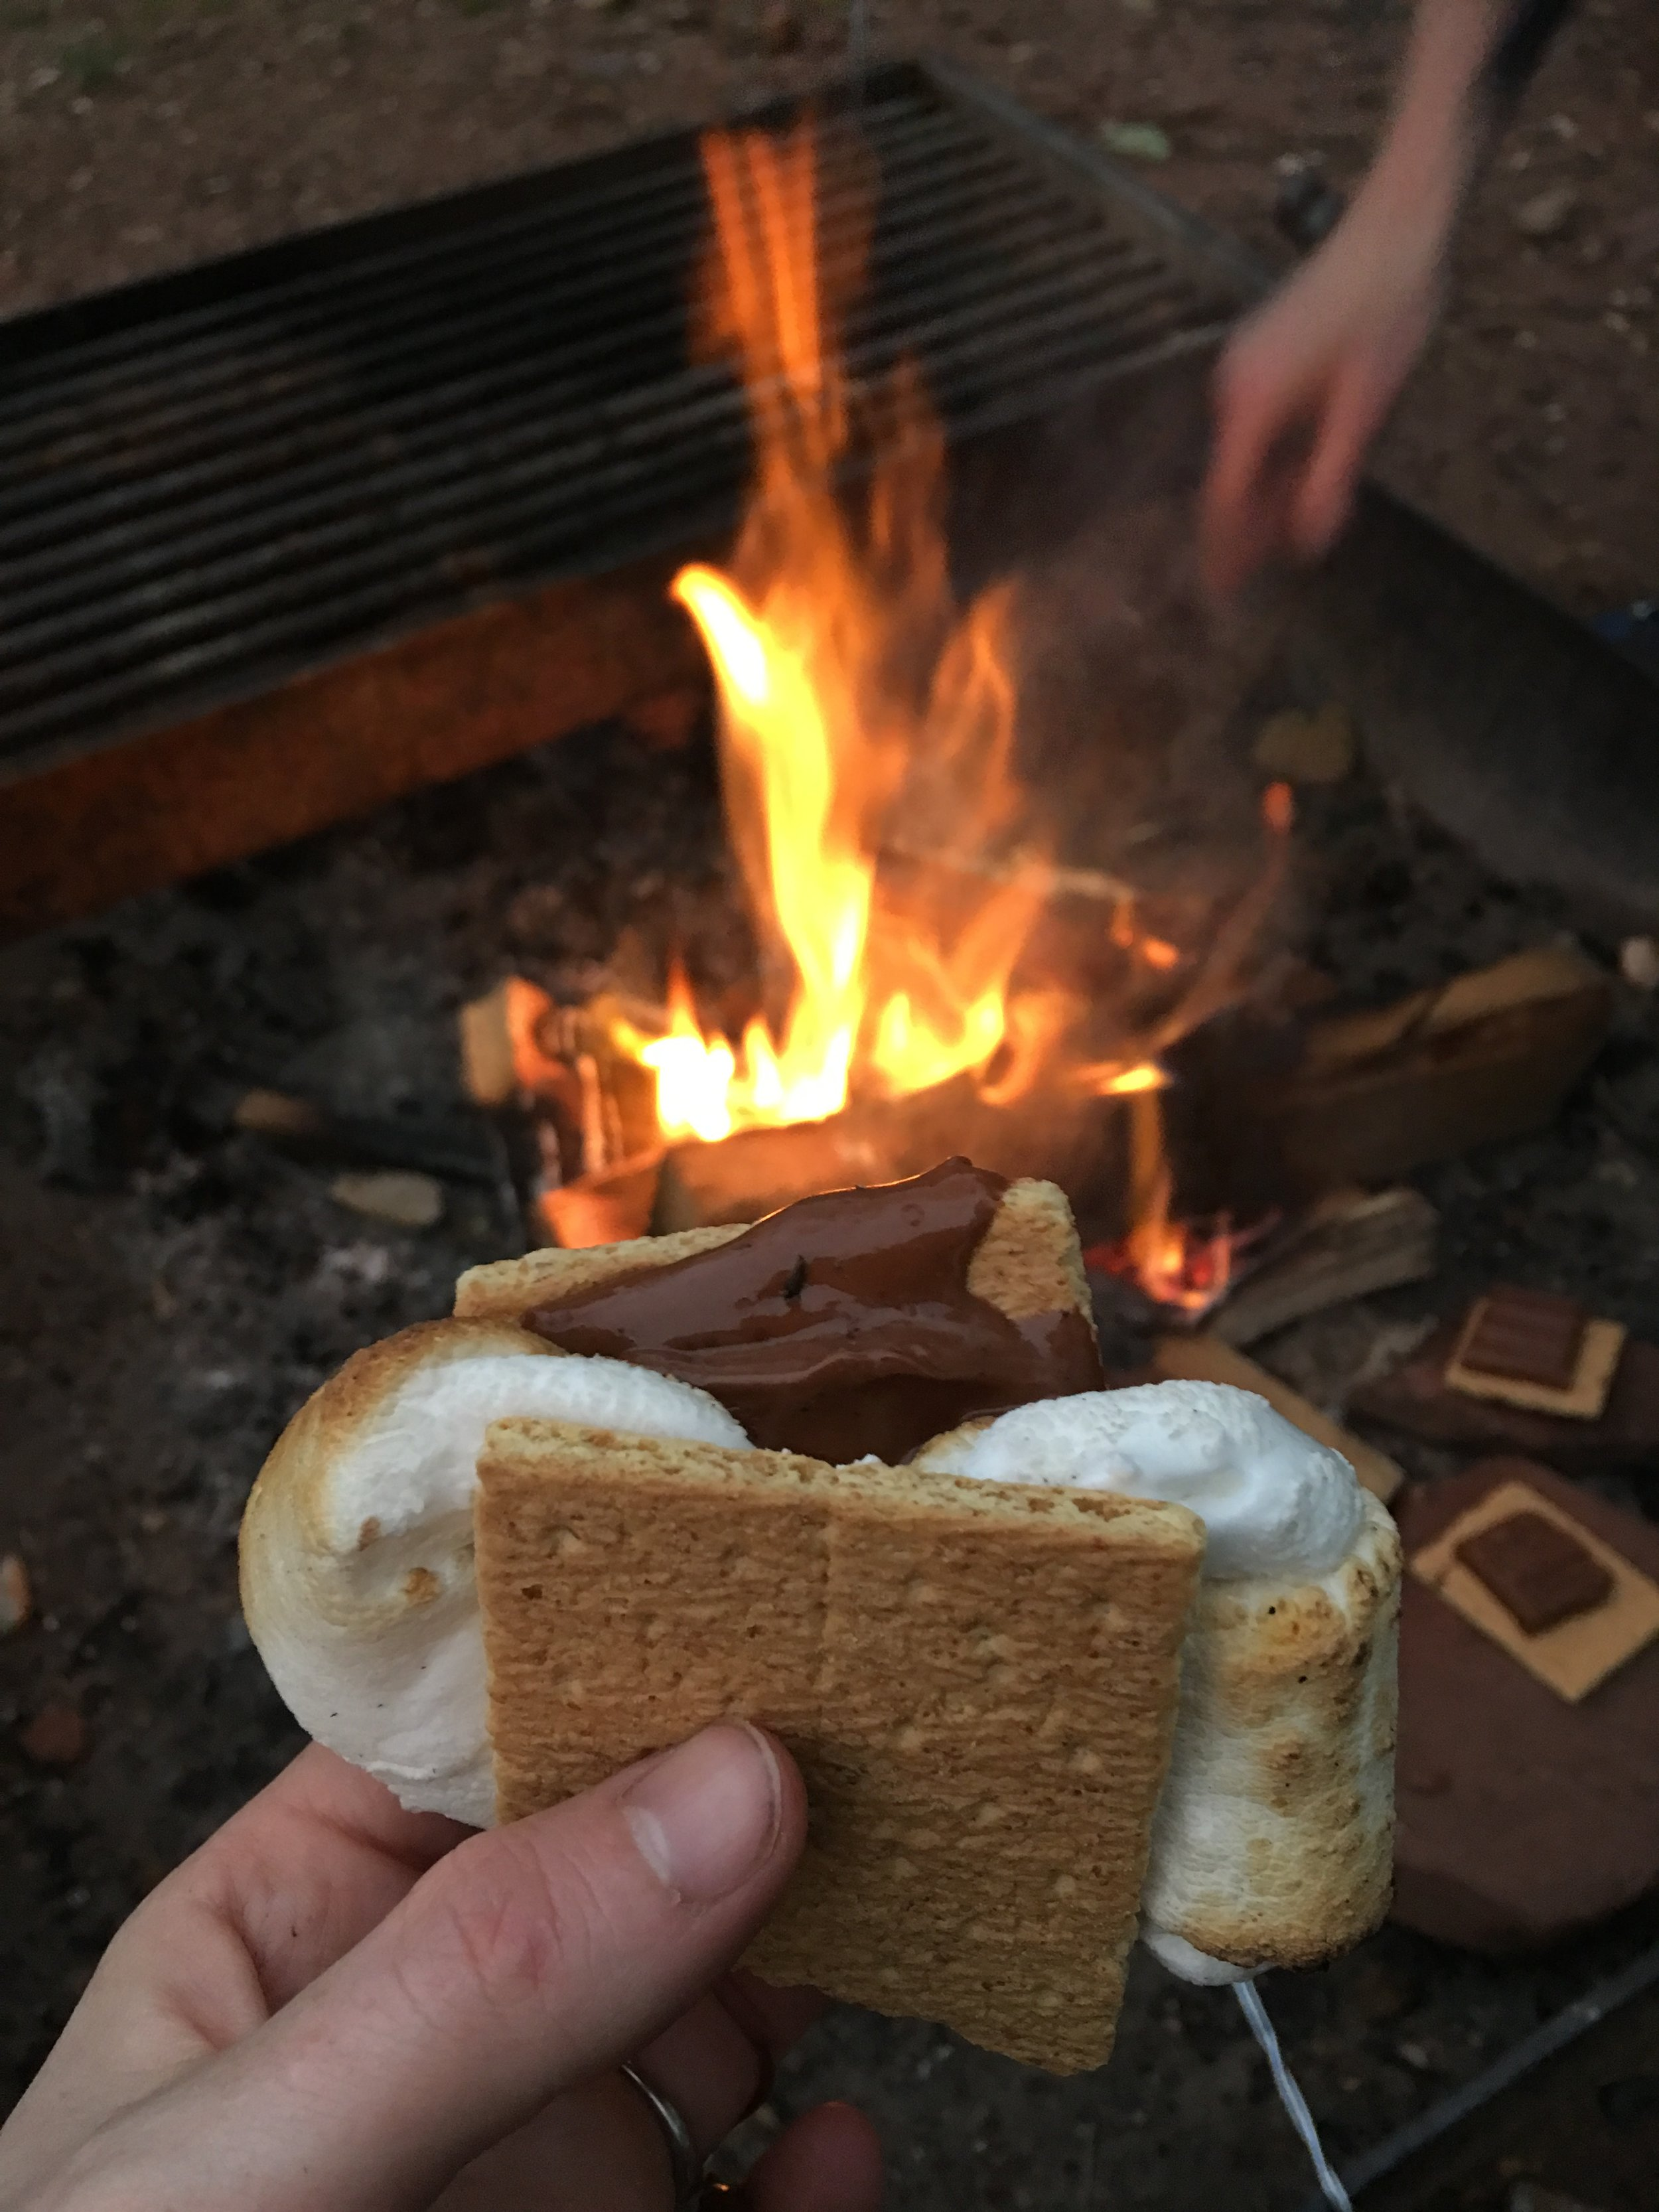 I was a bit overzealous with two marshmallows in one s'more- ''twas delicious yet quite messy!